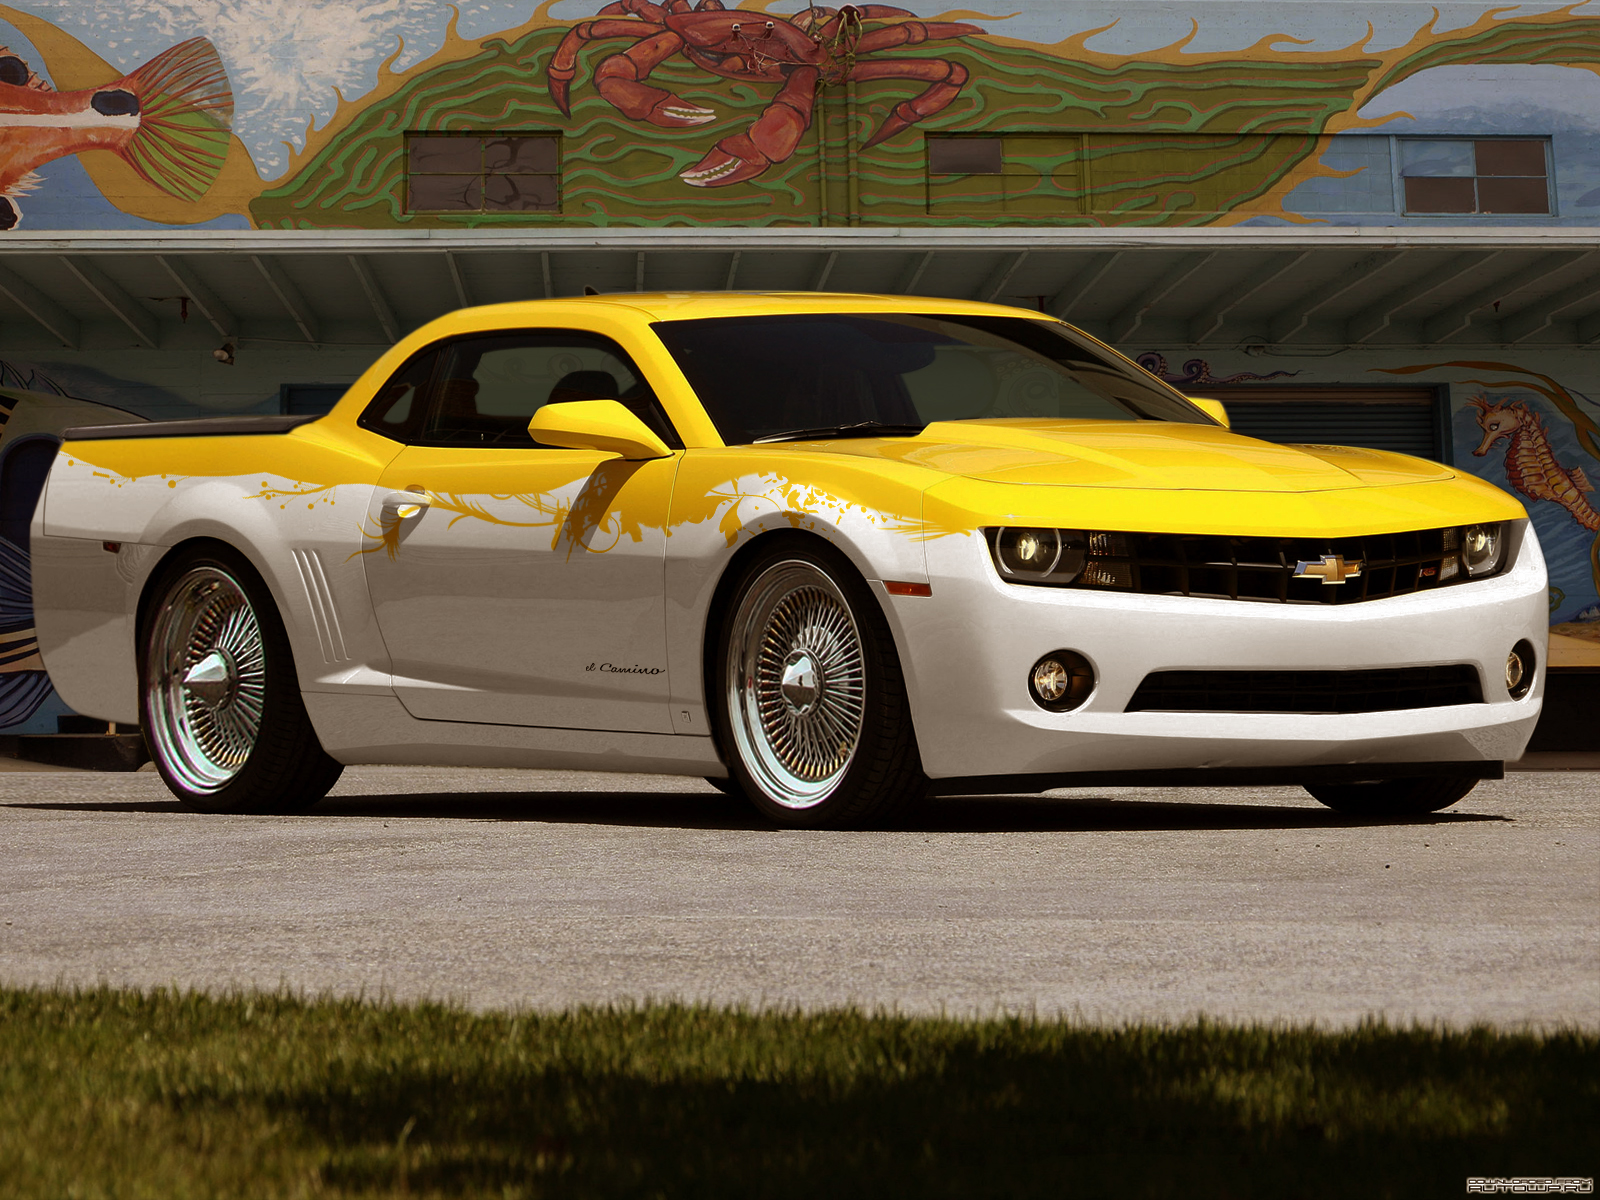 2010 Chevrolet El Camino by ~degraafm on deviantART